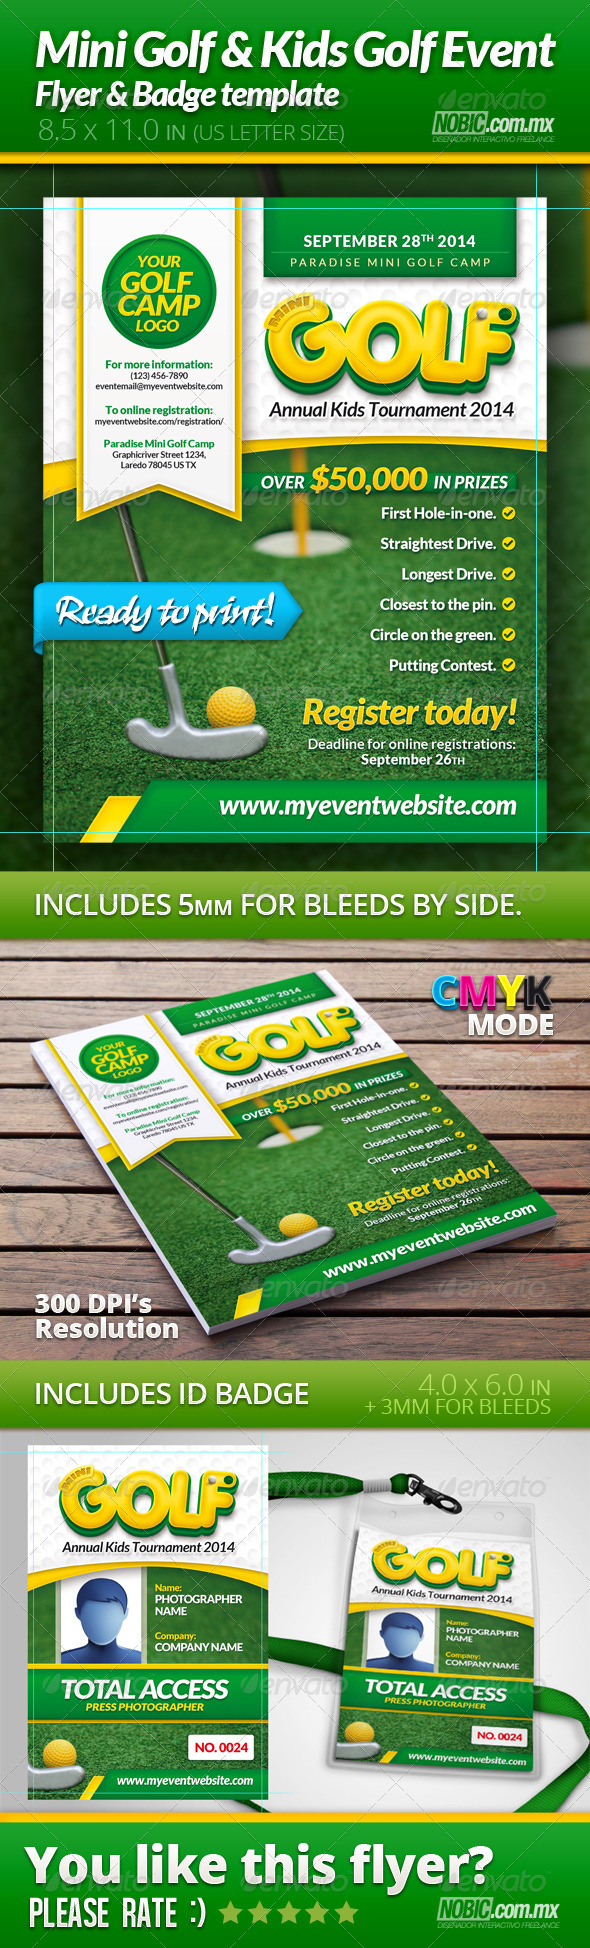 GraphicRiver Mini Golf and Kids Golf Flyer and Badge Template 5430256